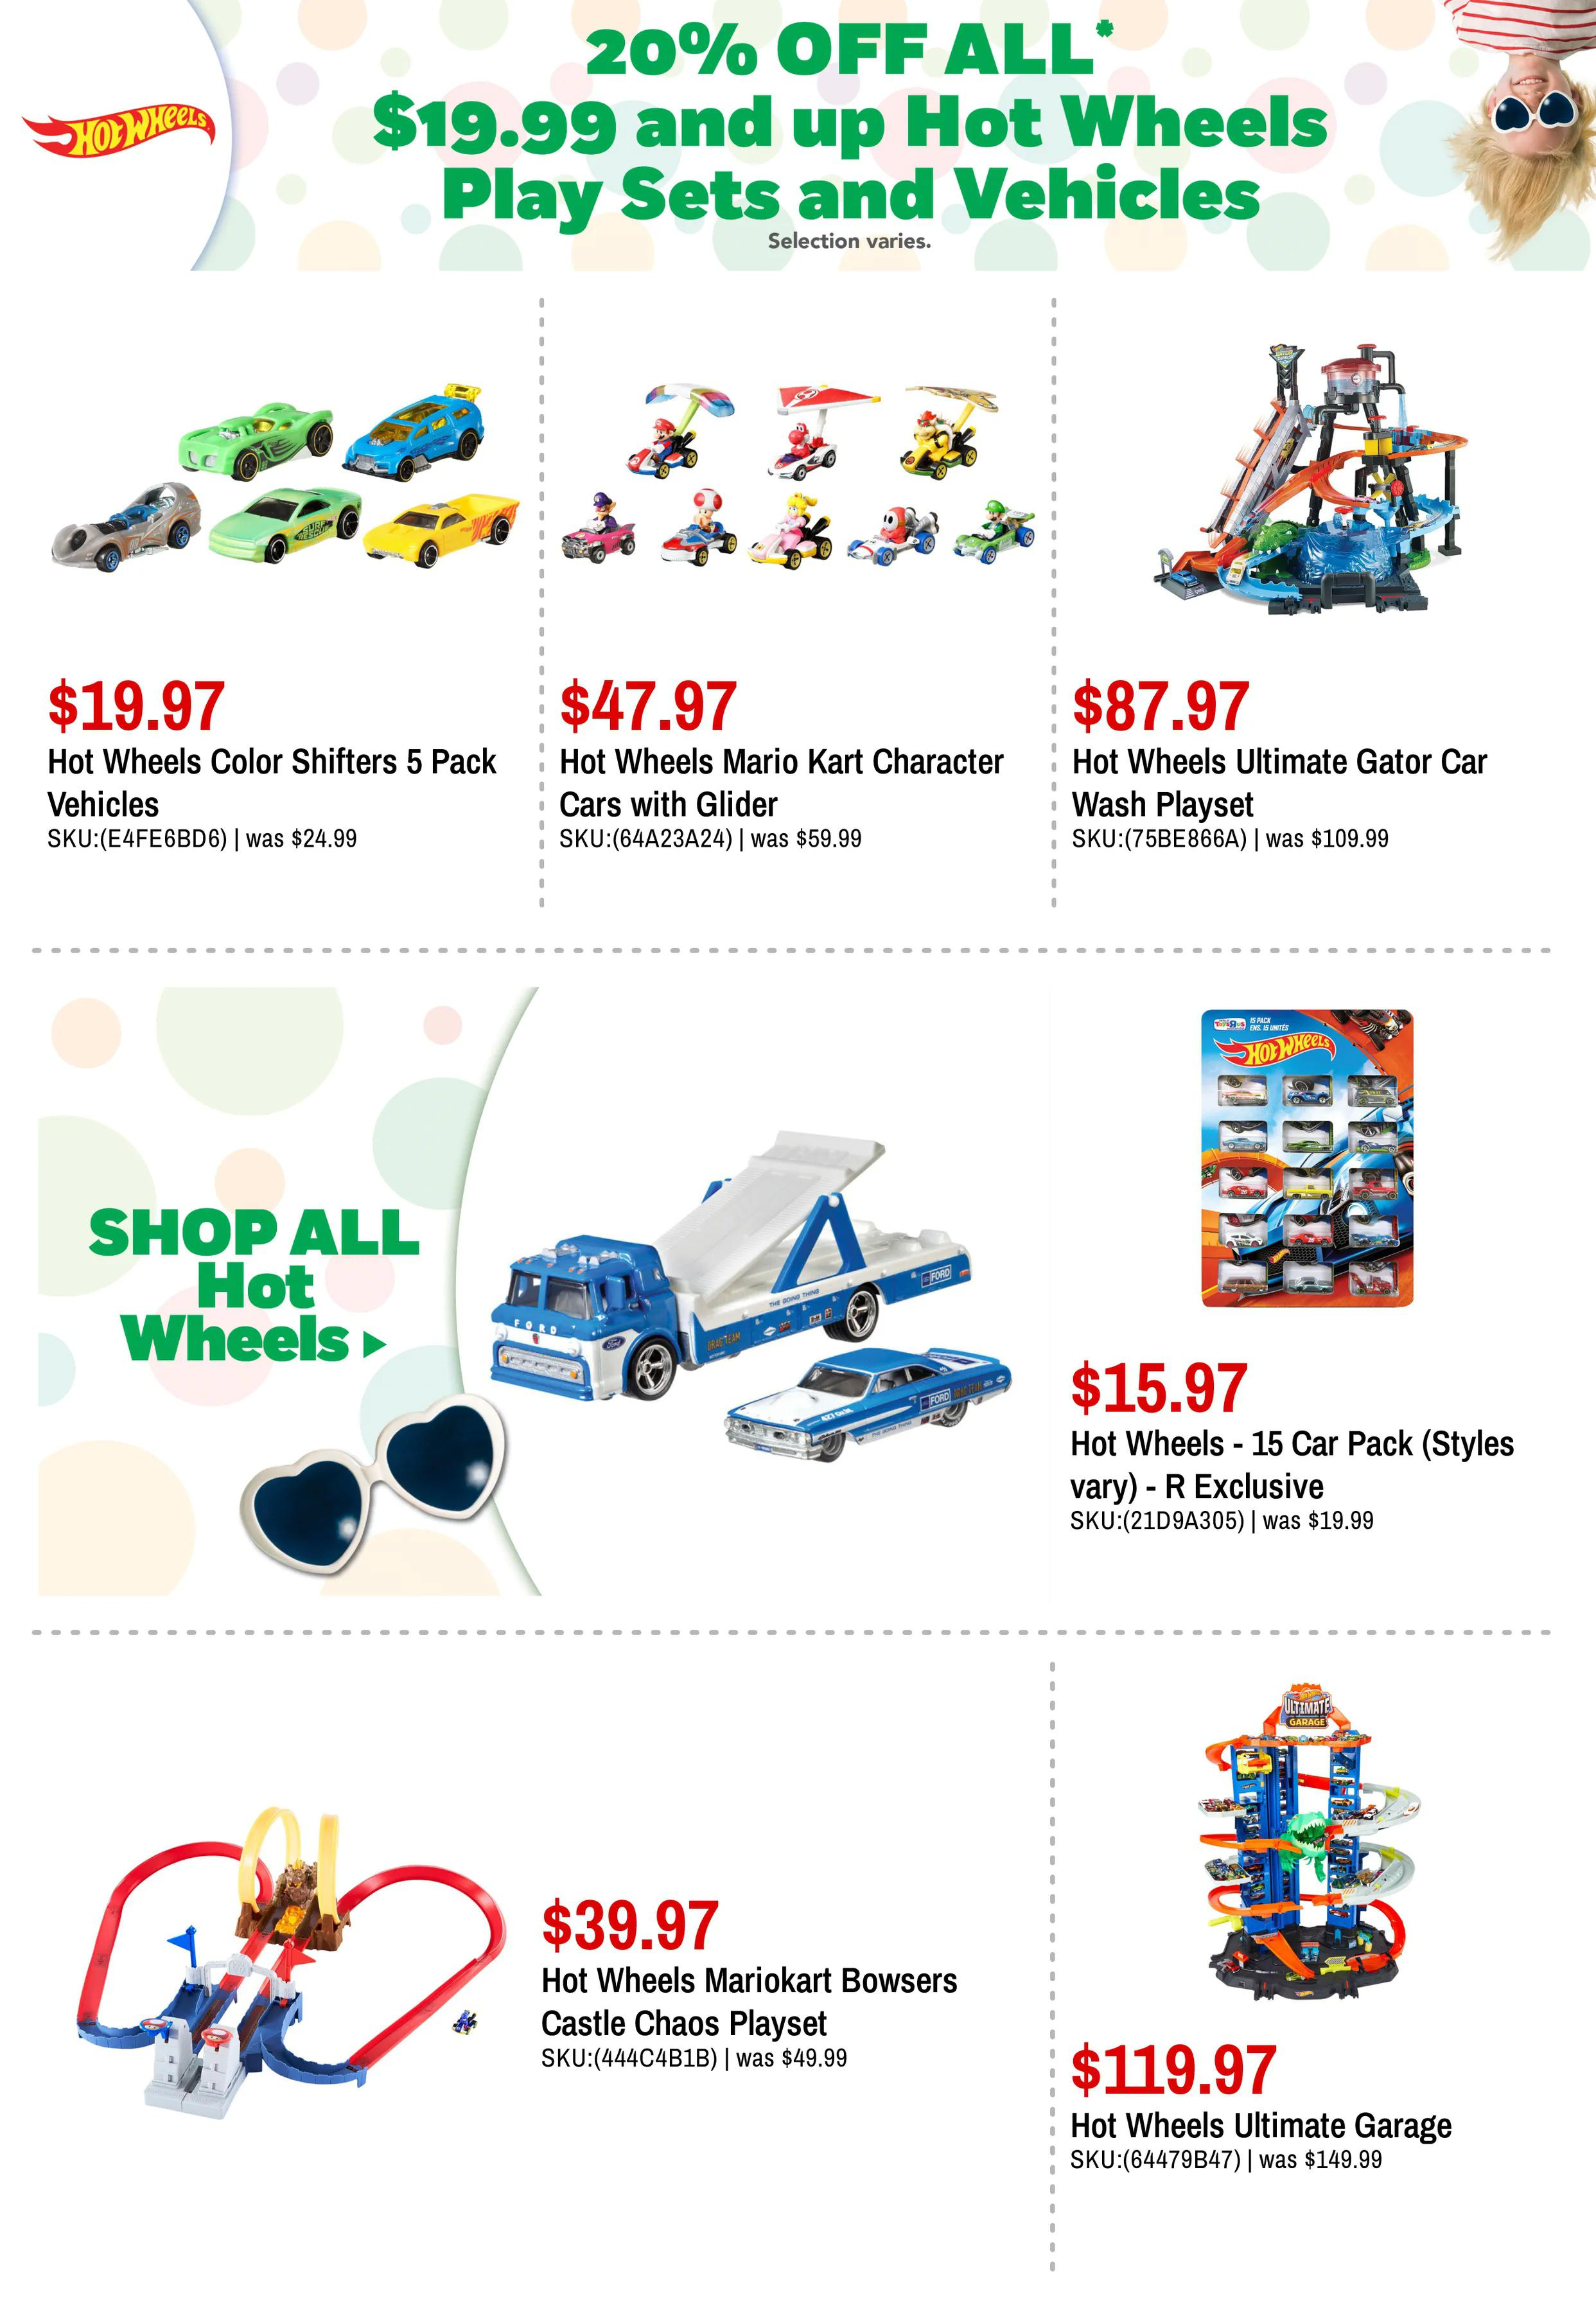 Toys 'R' Us - Weekly Flyer Specials - Page 13